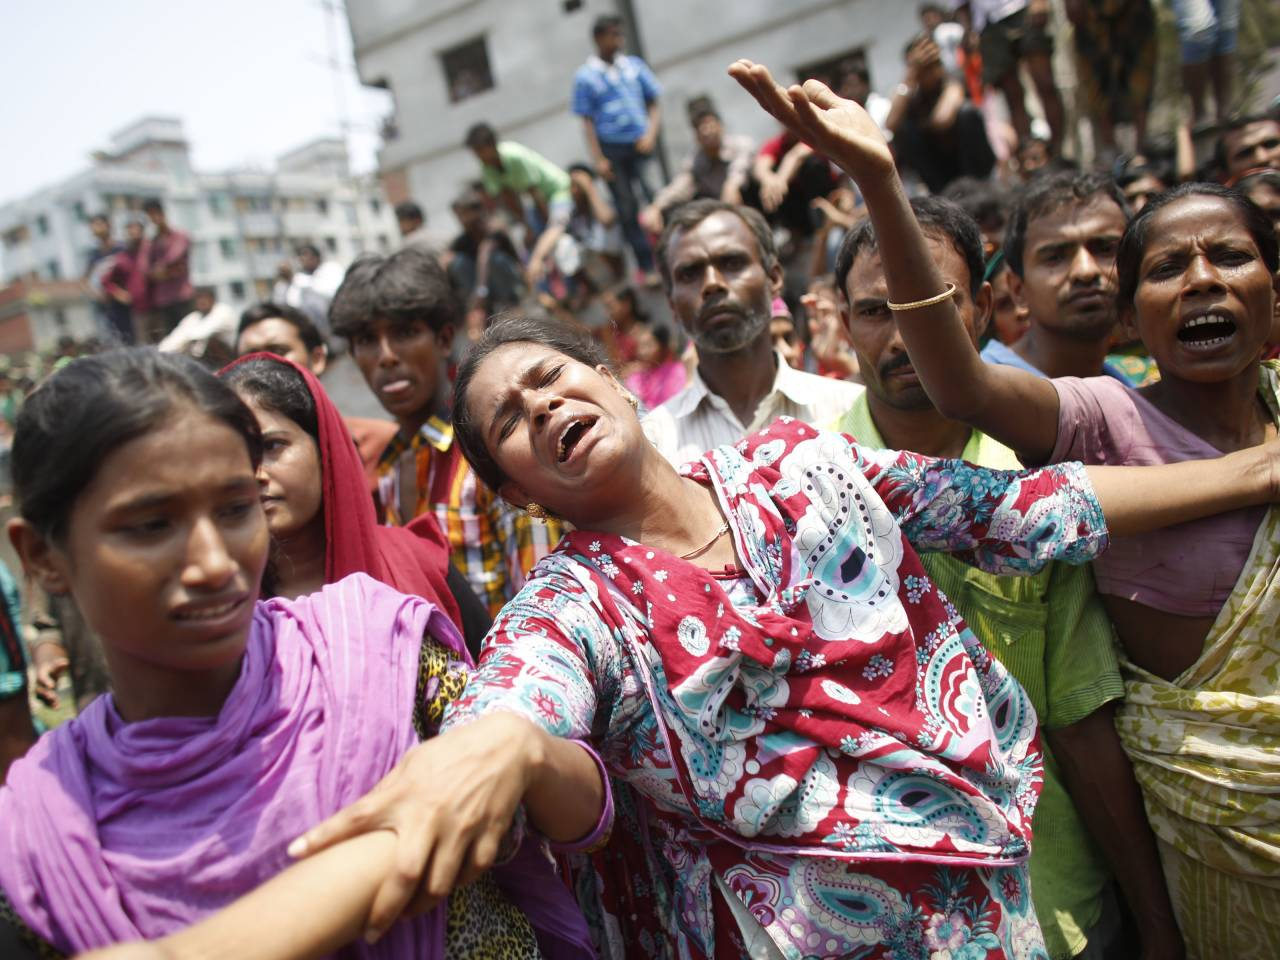 Working in the rana plaza building when it collapsed in savar 30 km